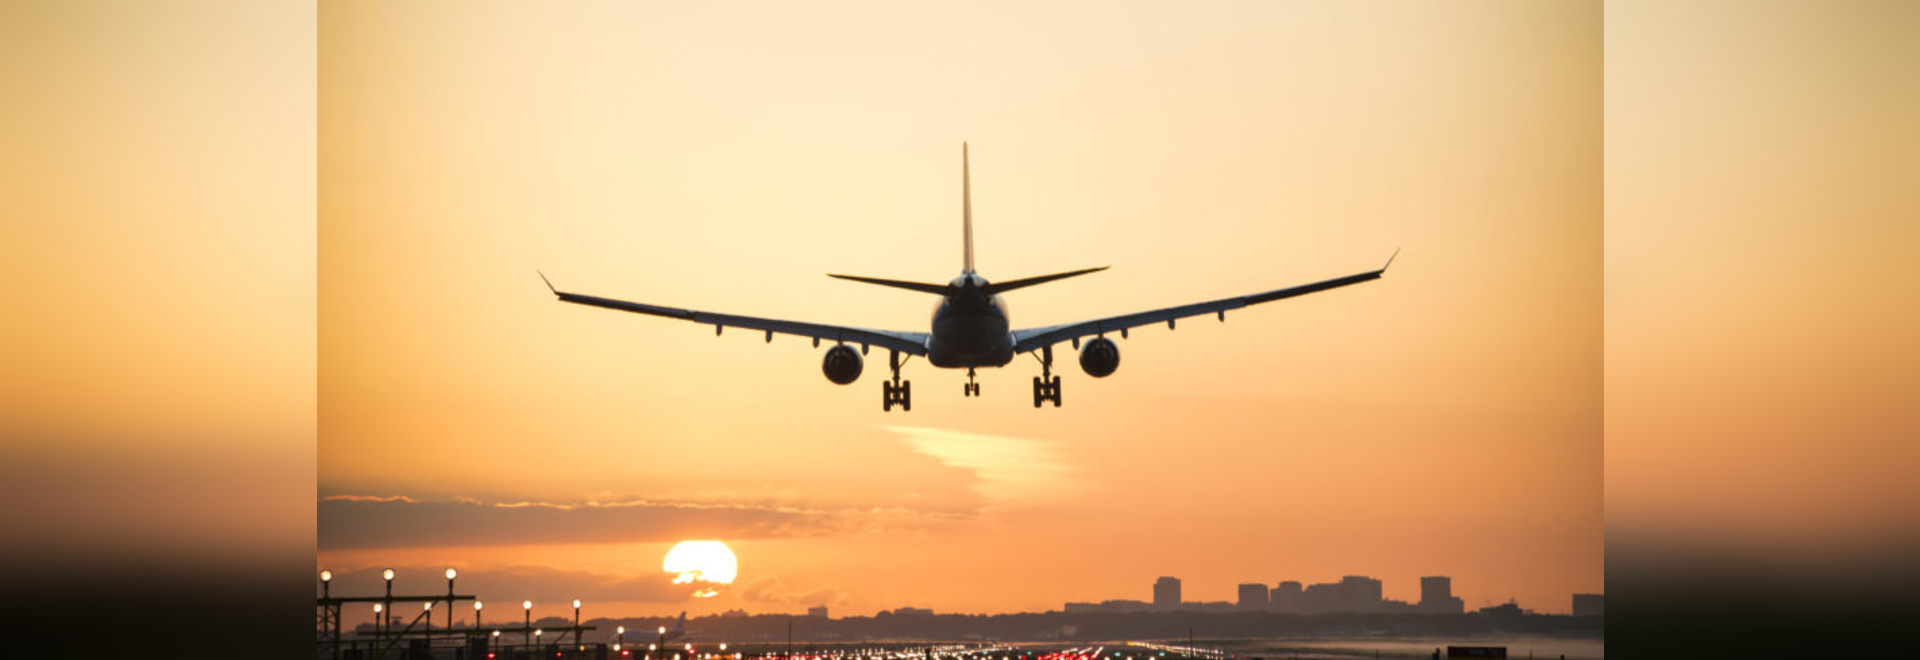 Business resilience during crisis recovery and beyond: The creation of an Airport Operations Plan (AOP)